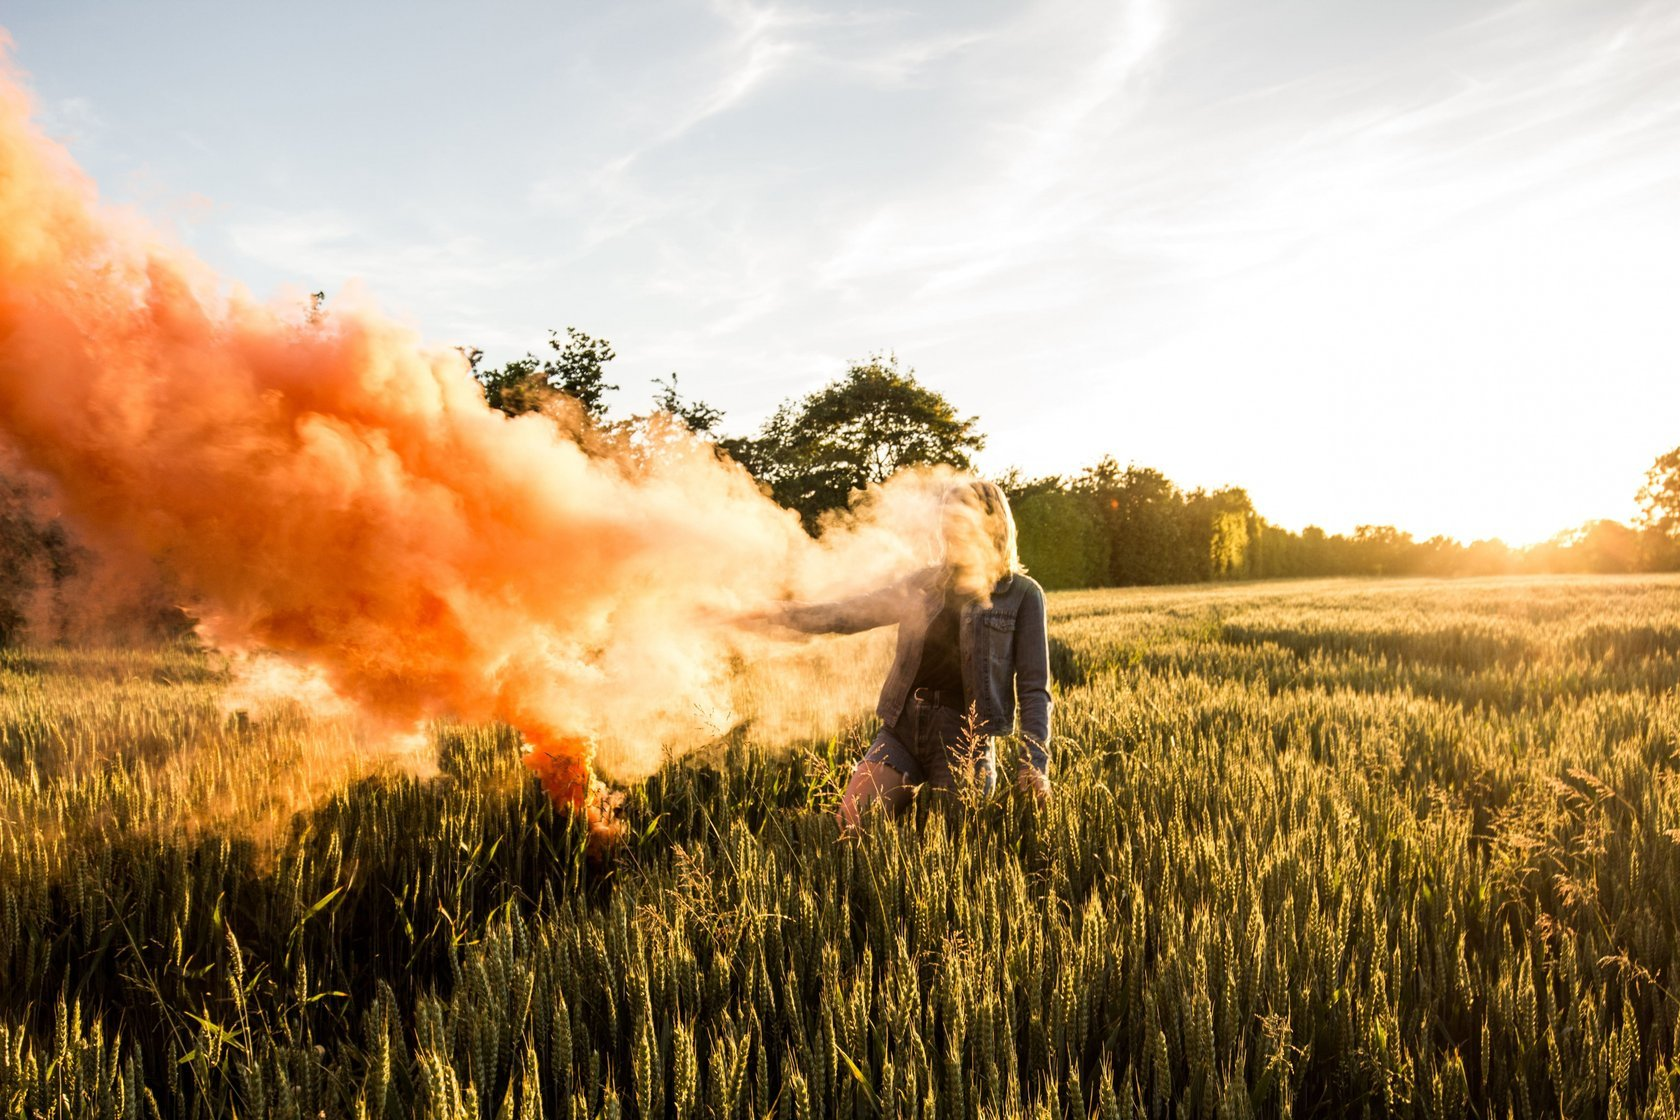 Smoke Bomb Photography You Can Master Quickly and Easily Image3